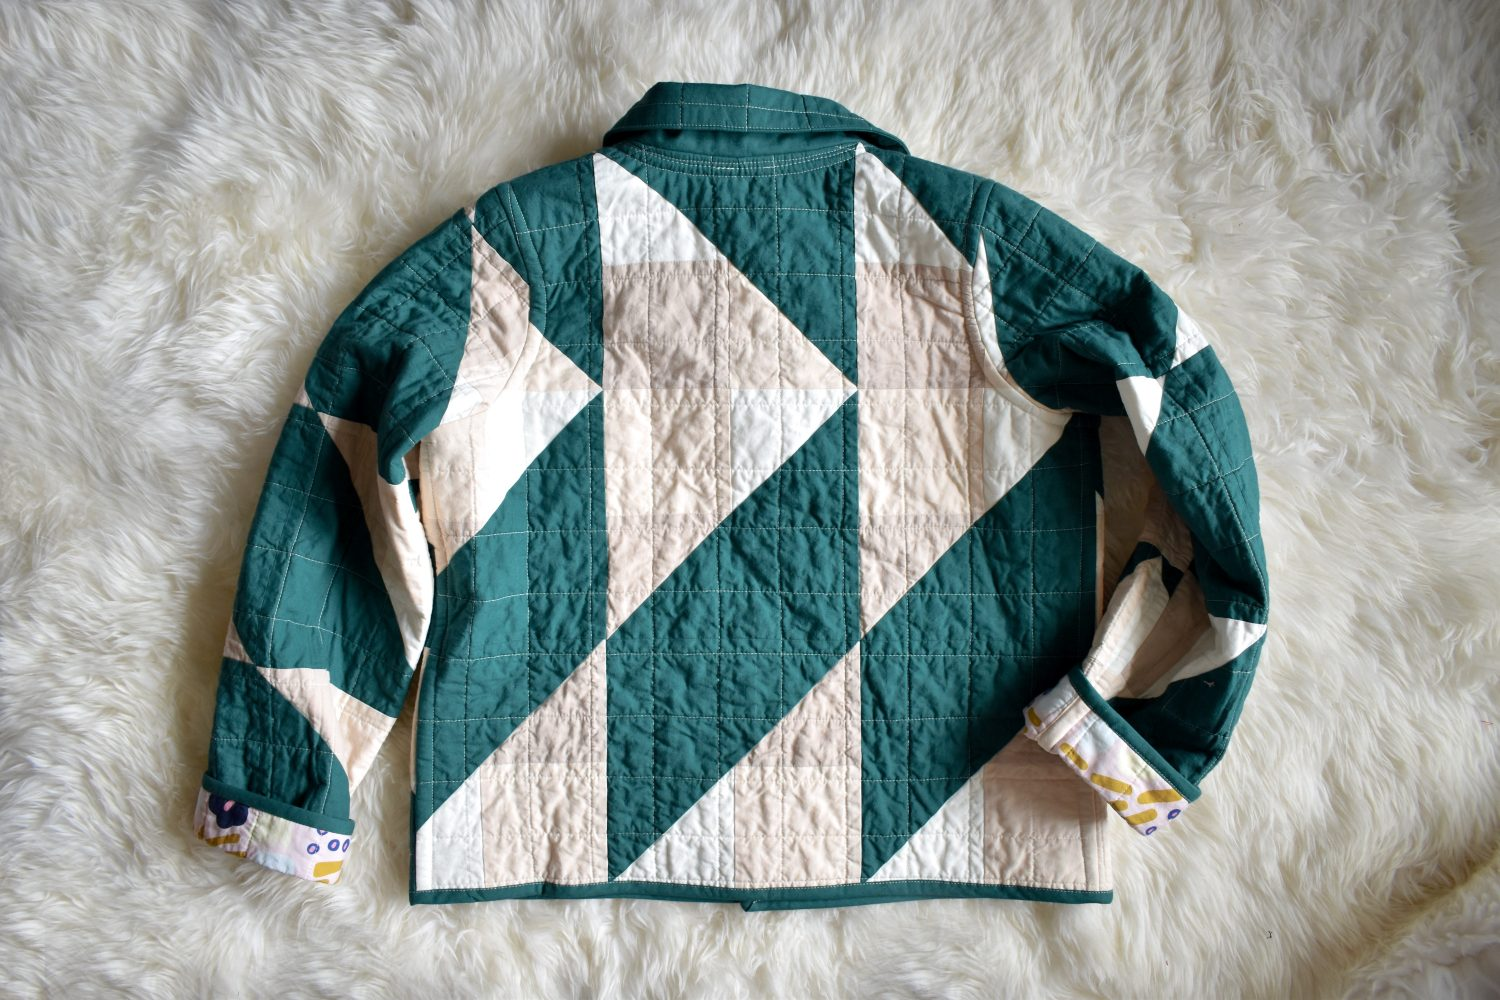 Cirrus quilt turned into coat